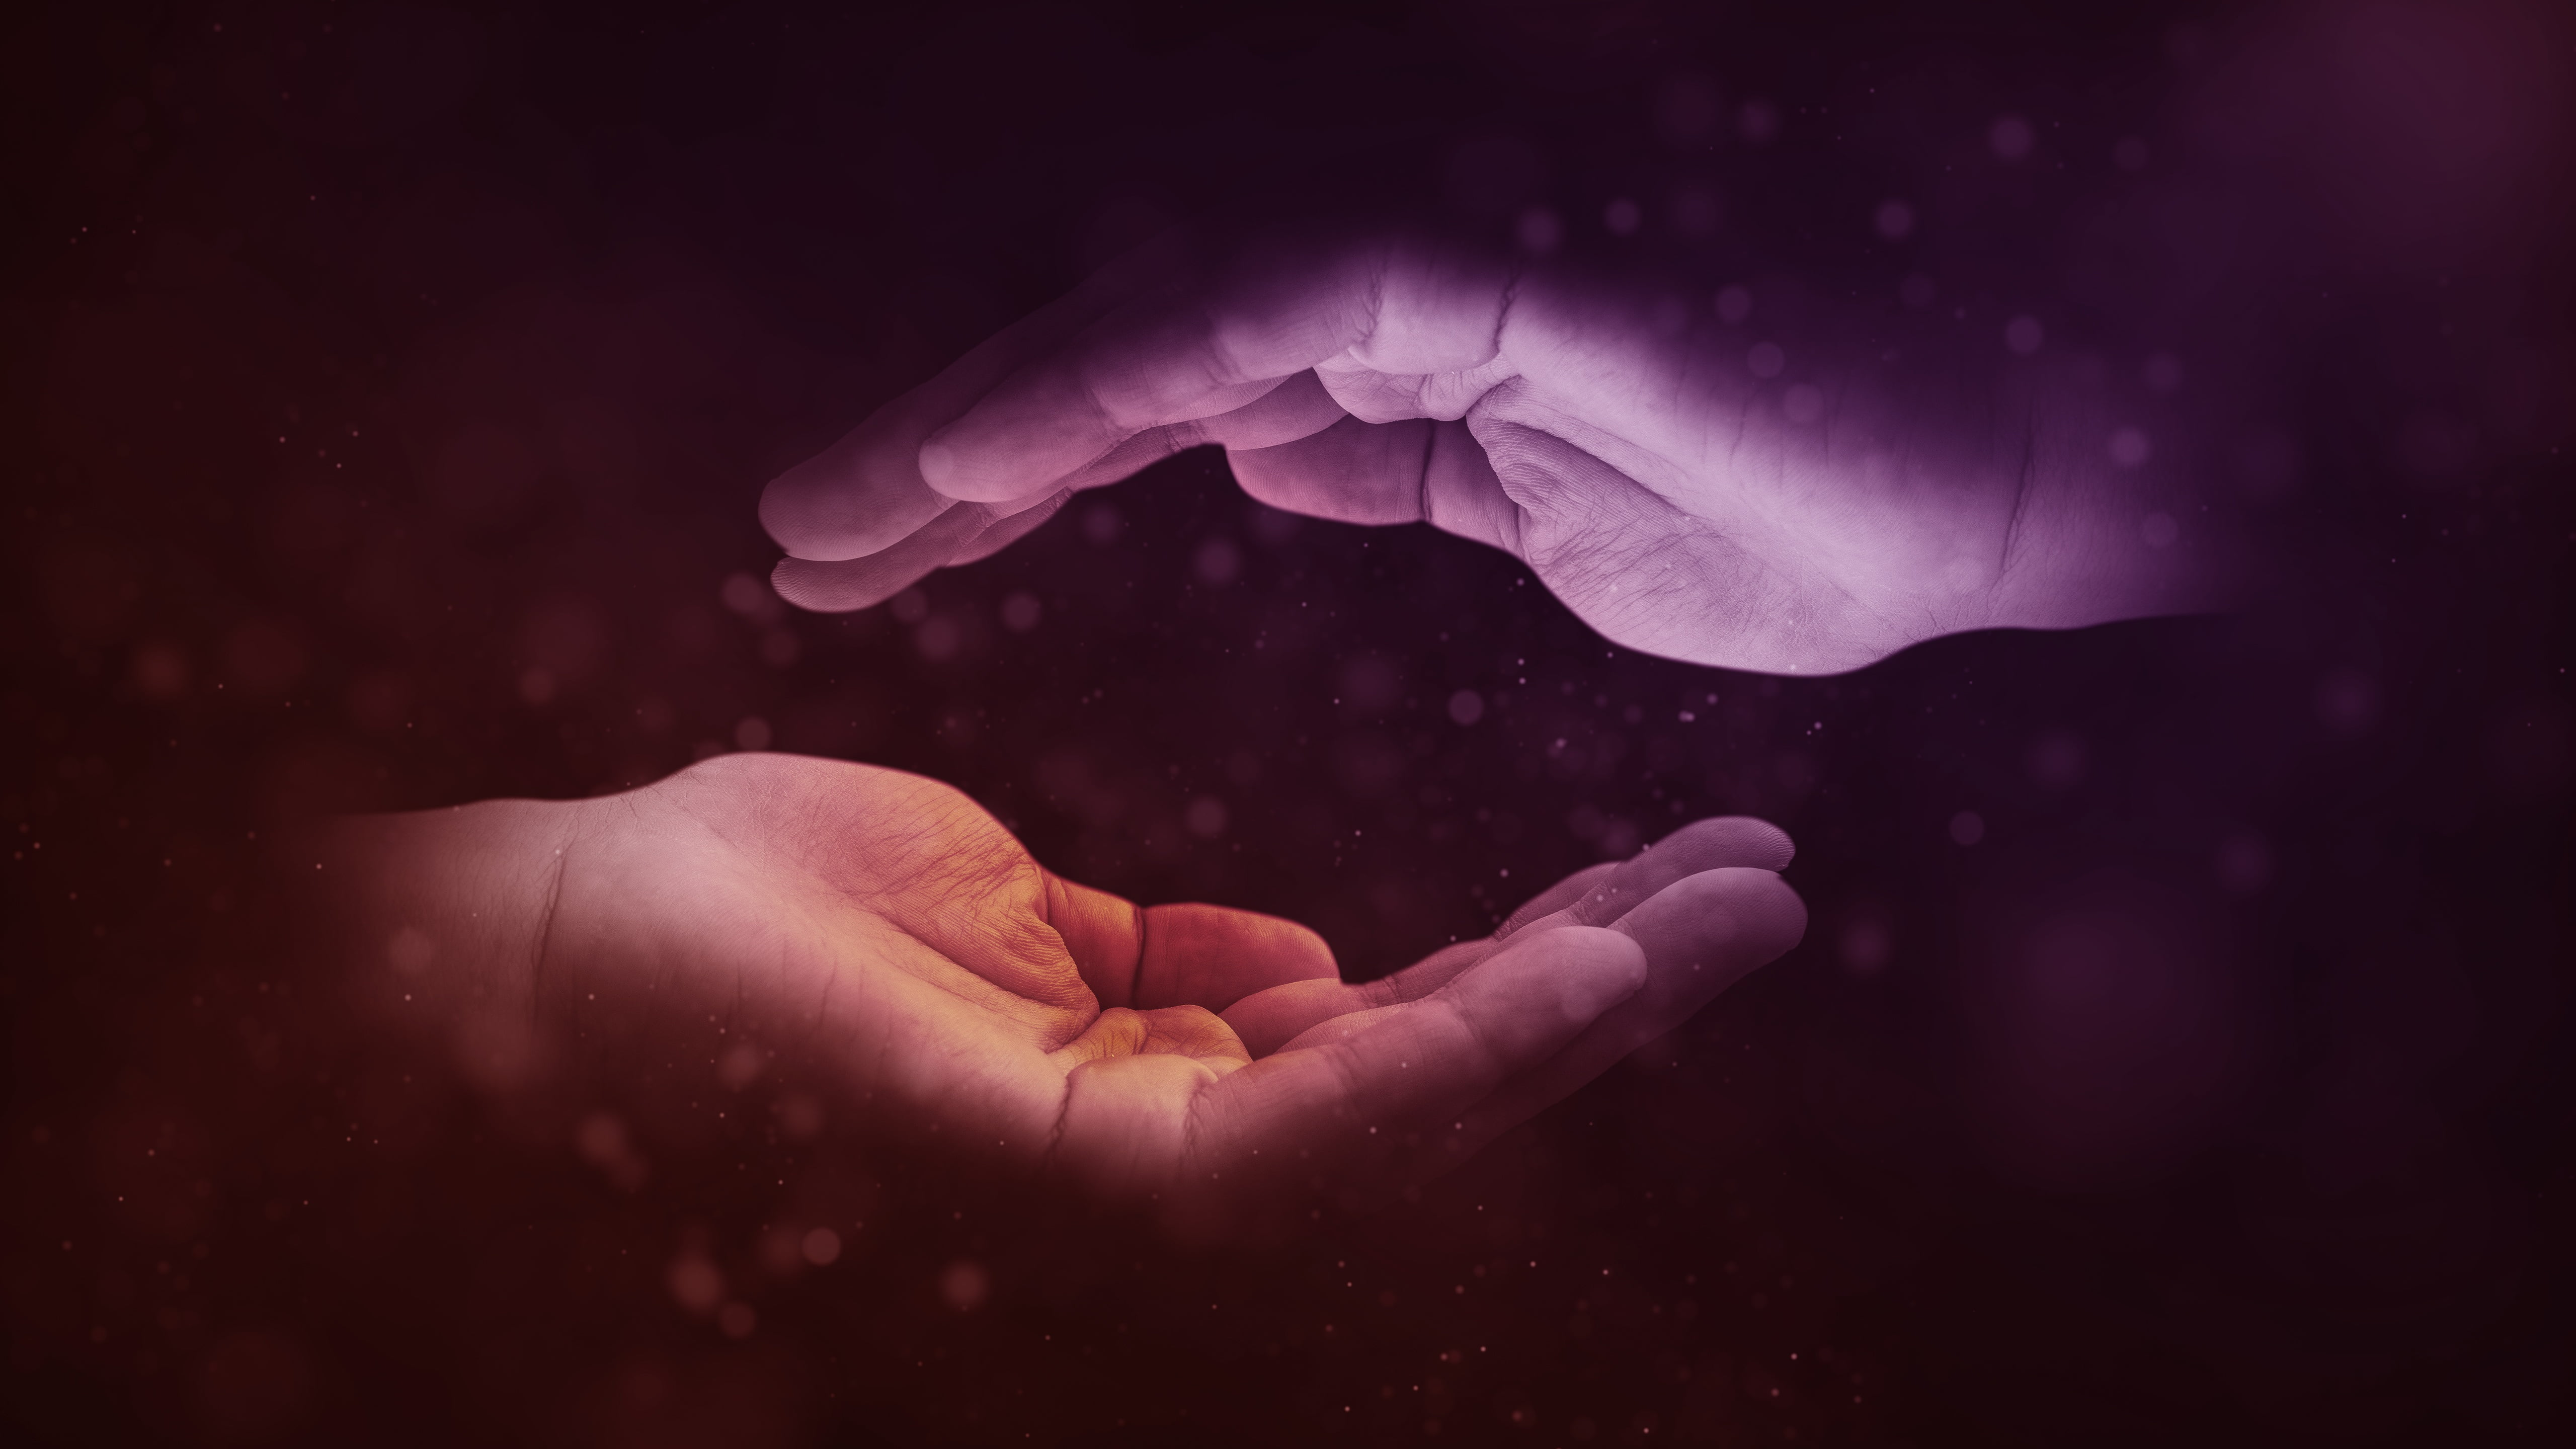 Photo of two hands HD wallpaper Wallpaper Flare 5120x2880